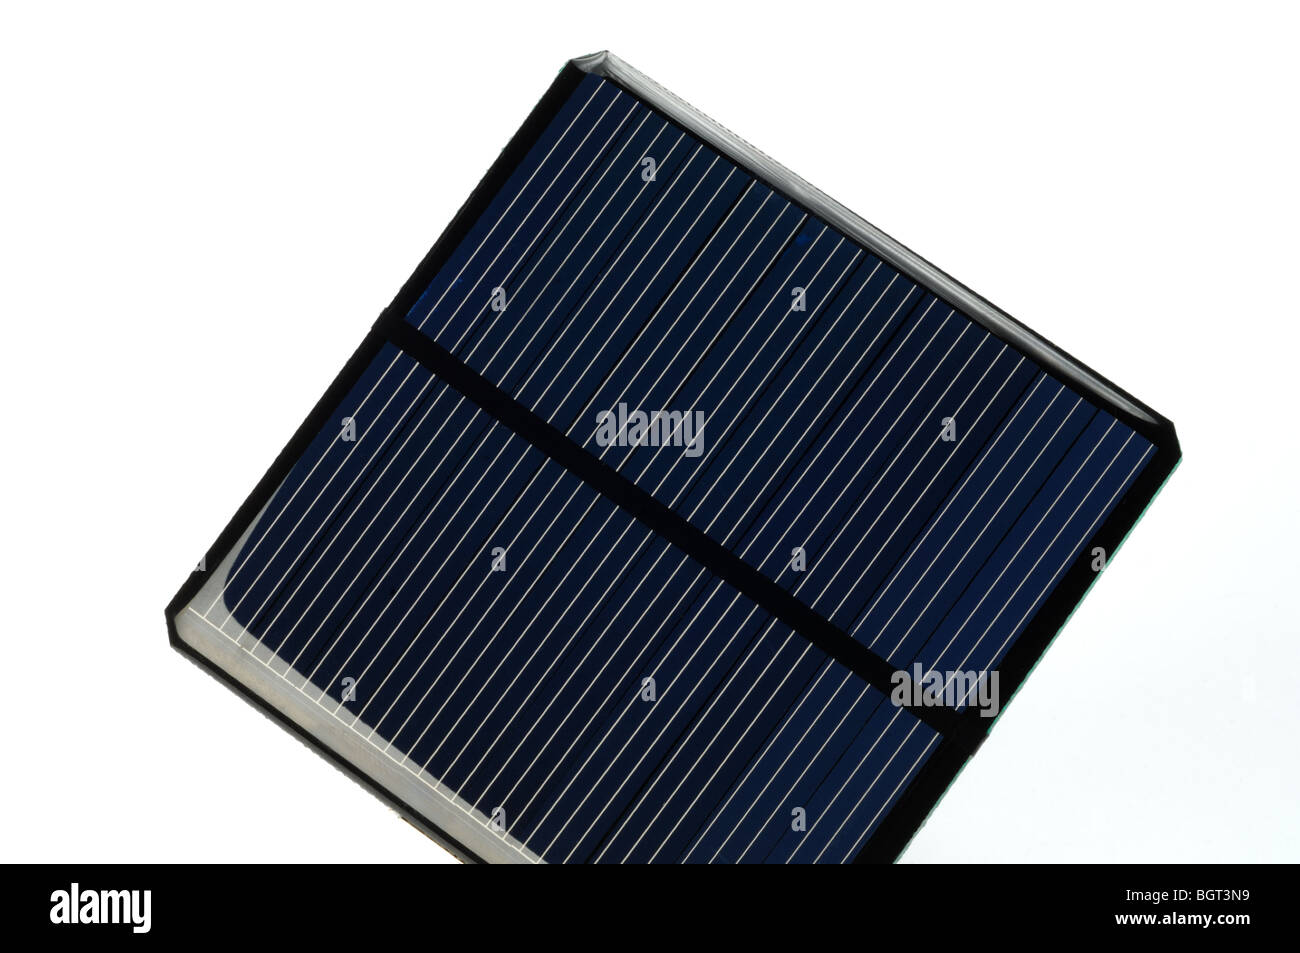 A square solar panel on a white background - Stock Image